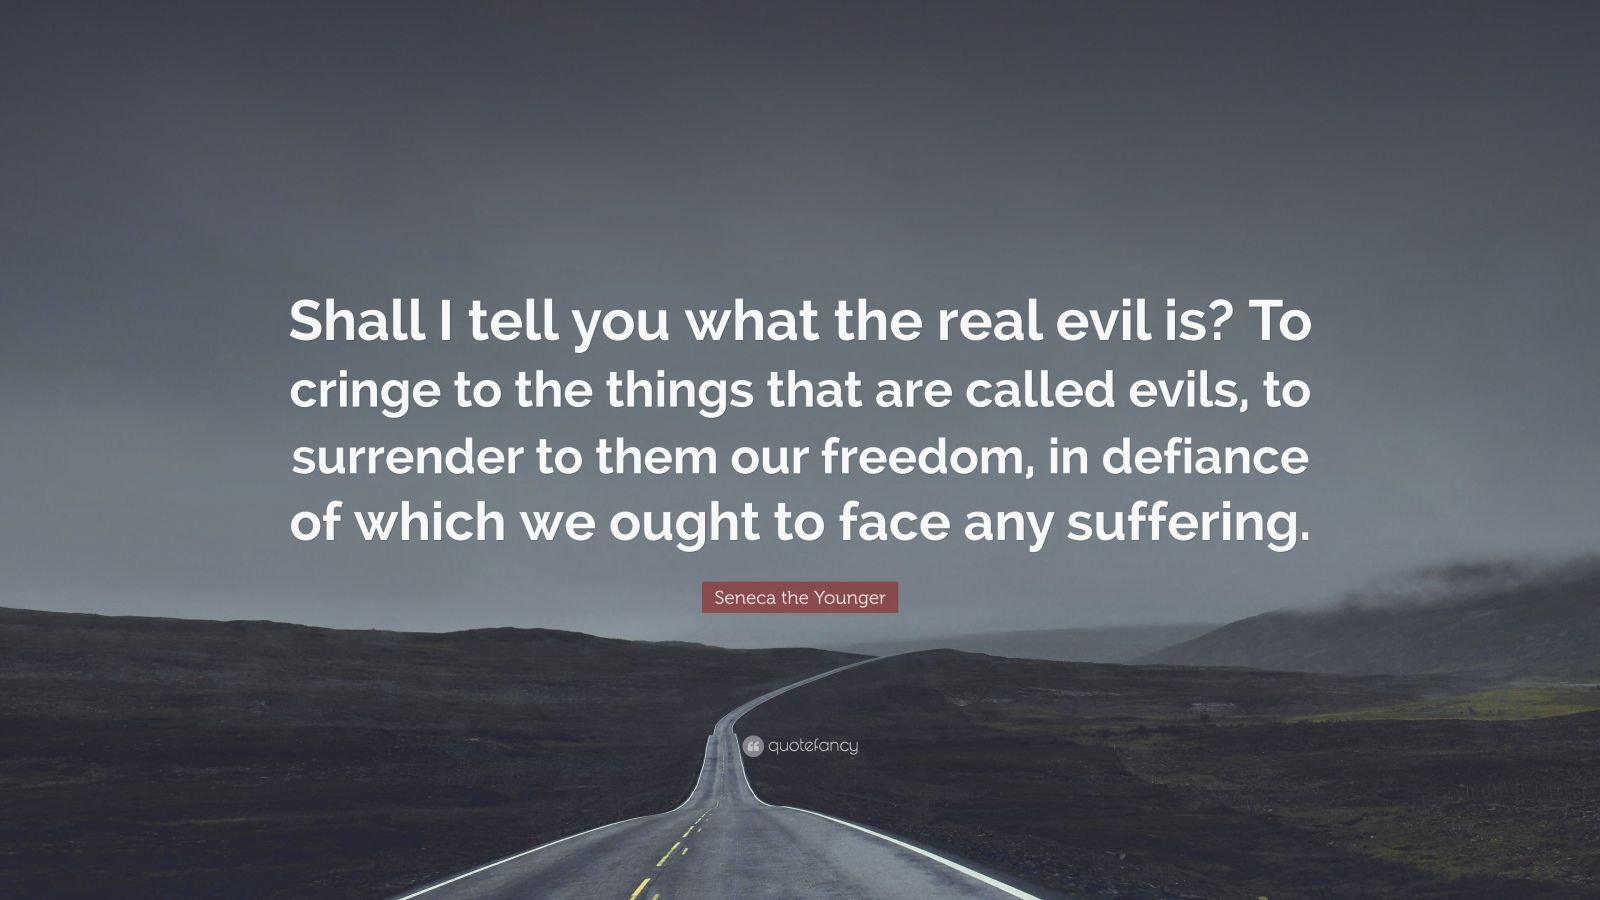 "Seneca the Younger Quote: ""Shall I tell you what the real evil is? To cringe to the things that are called evils, to surrender to them our freedom, in defiance of which we ought to face any suffering."""